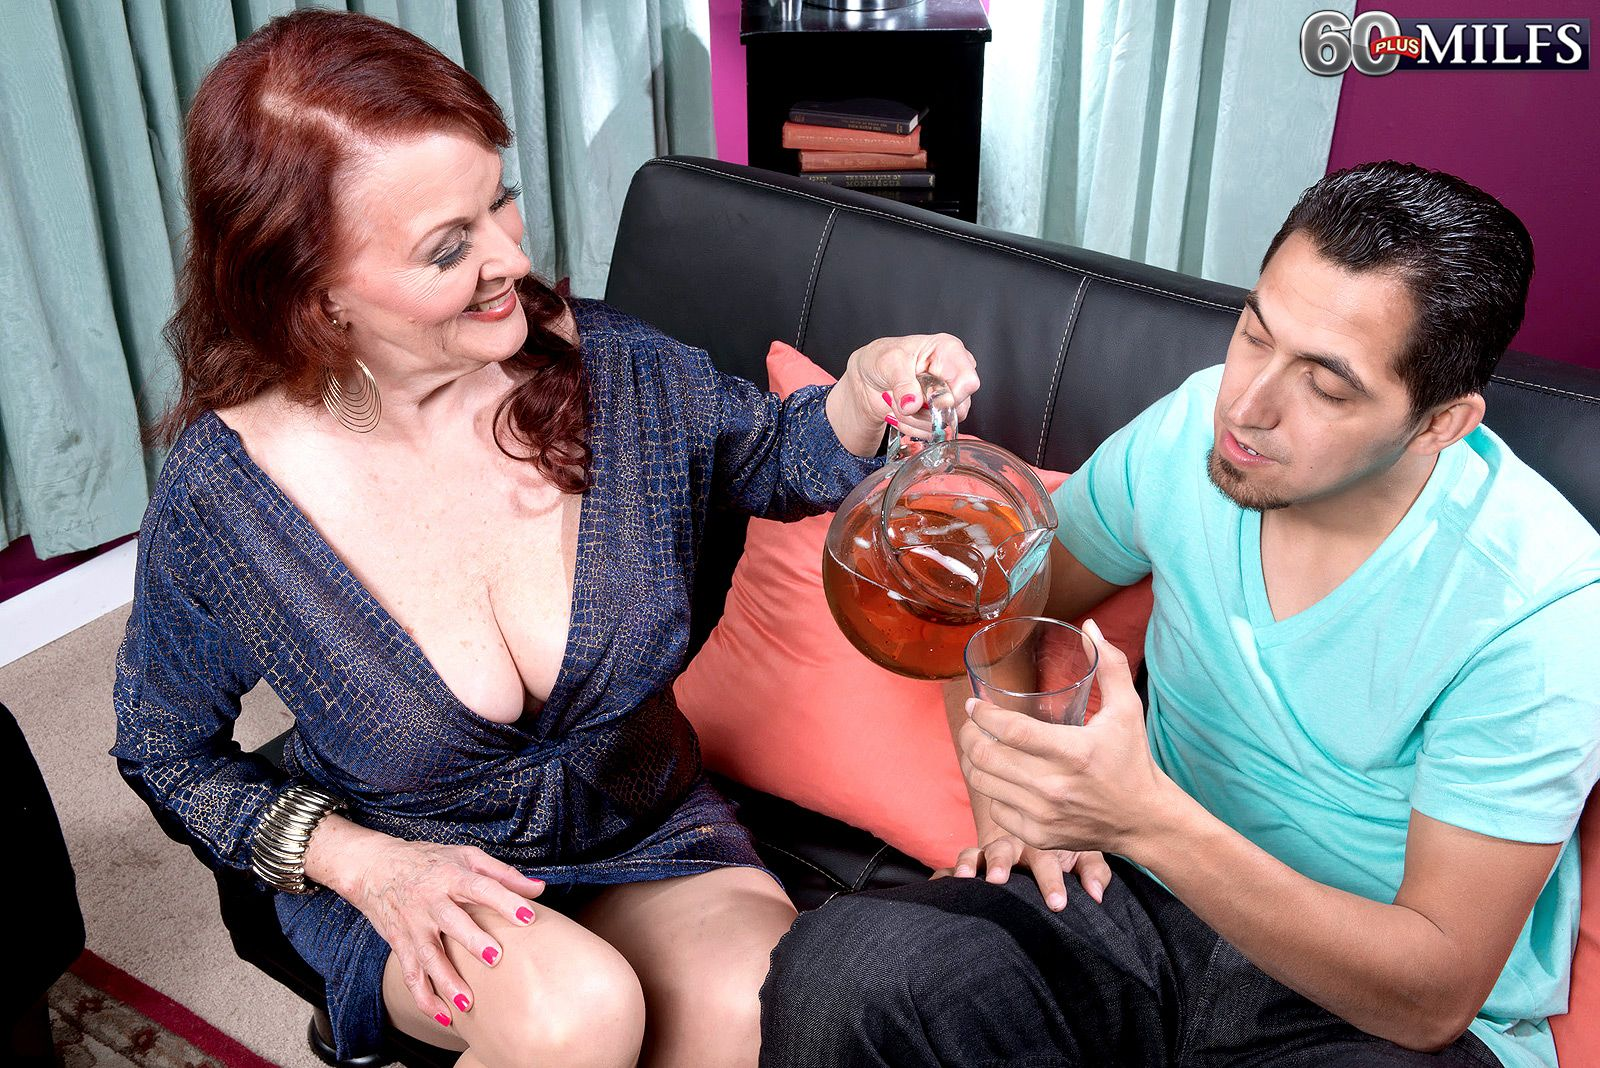 Redheaded granny serves up refreshments while seducing a younger man